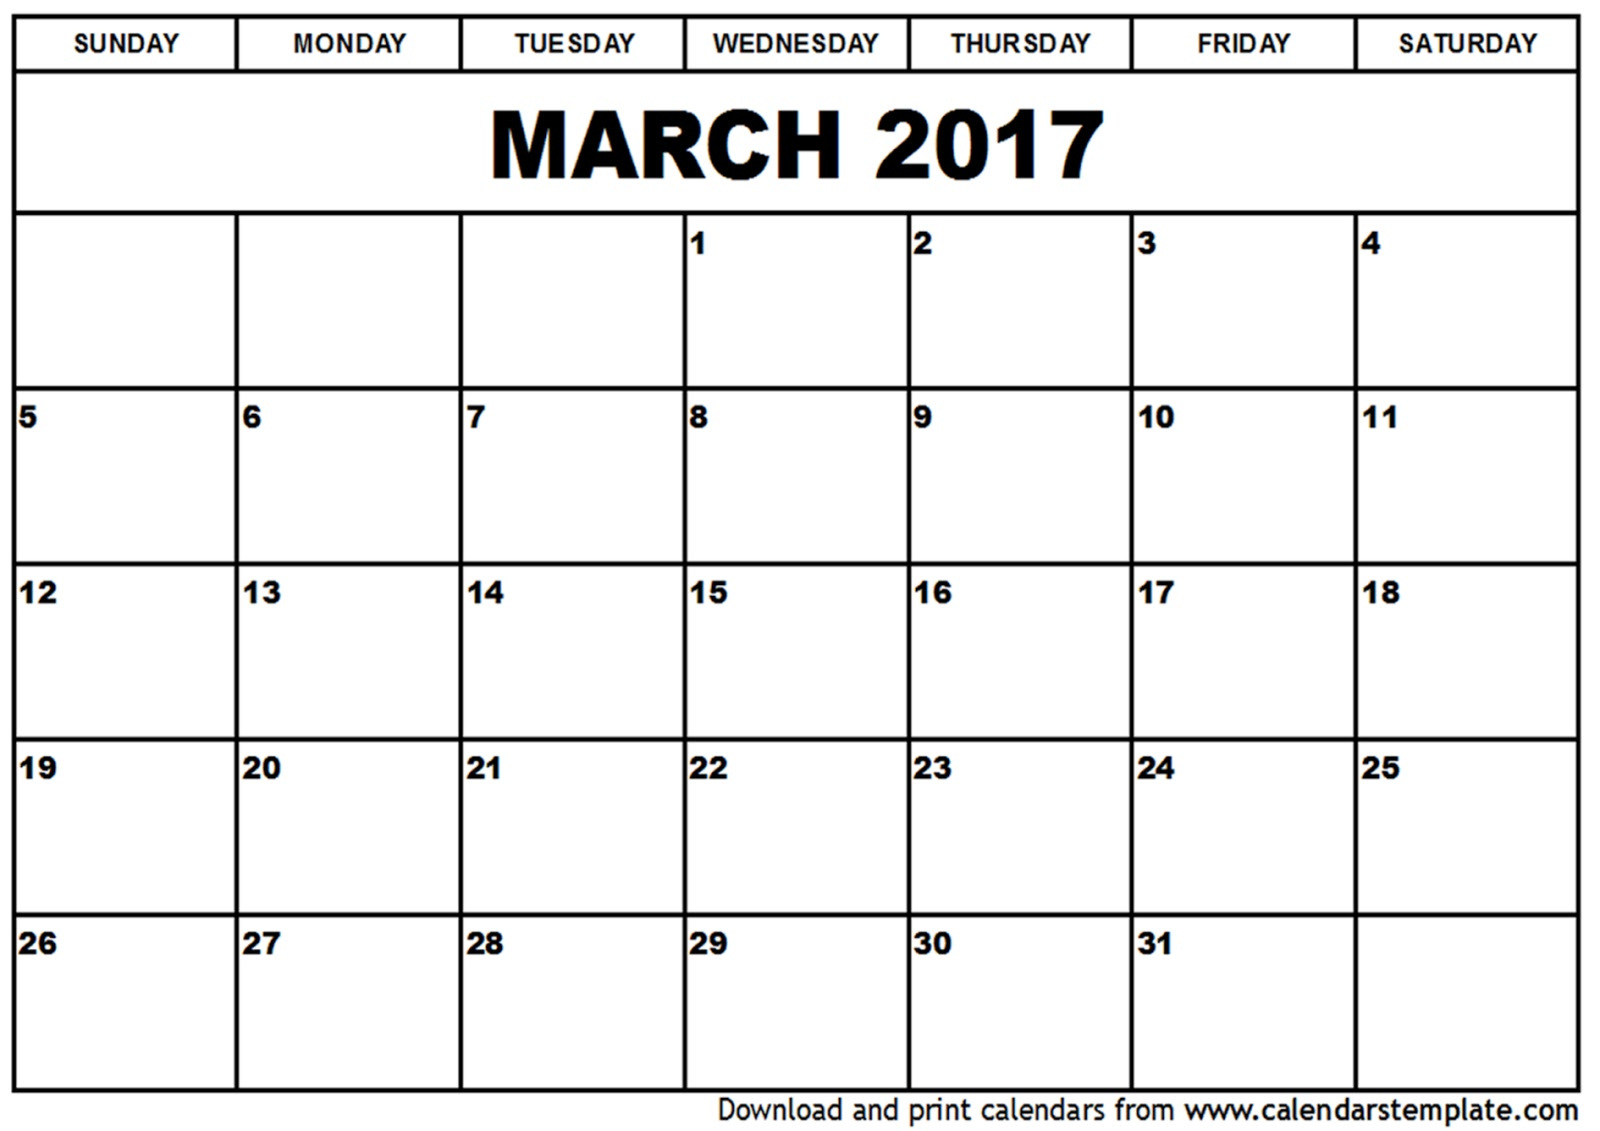 Free Printable Calendar: Free Printable Calendar March